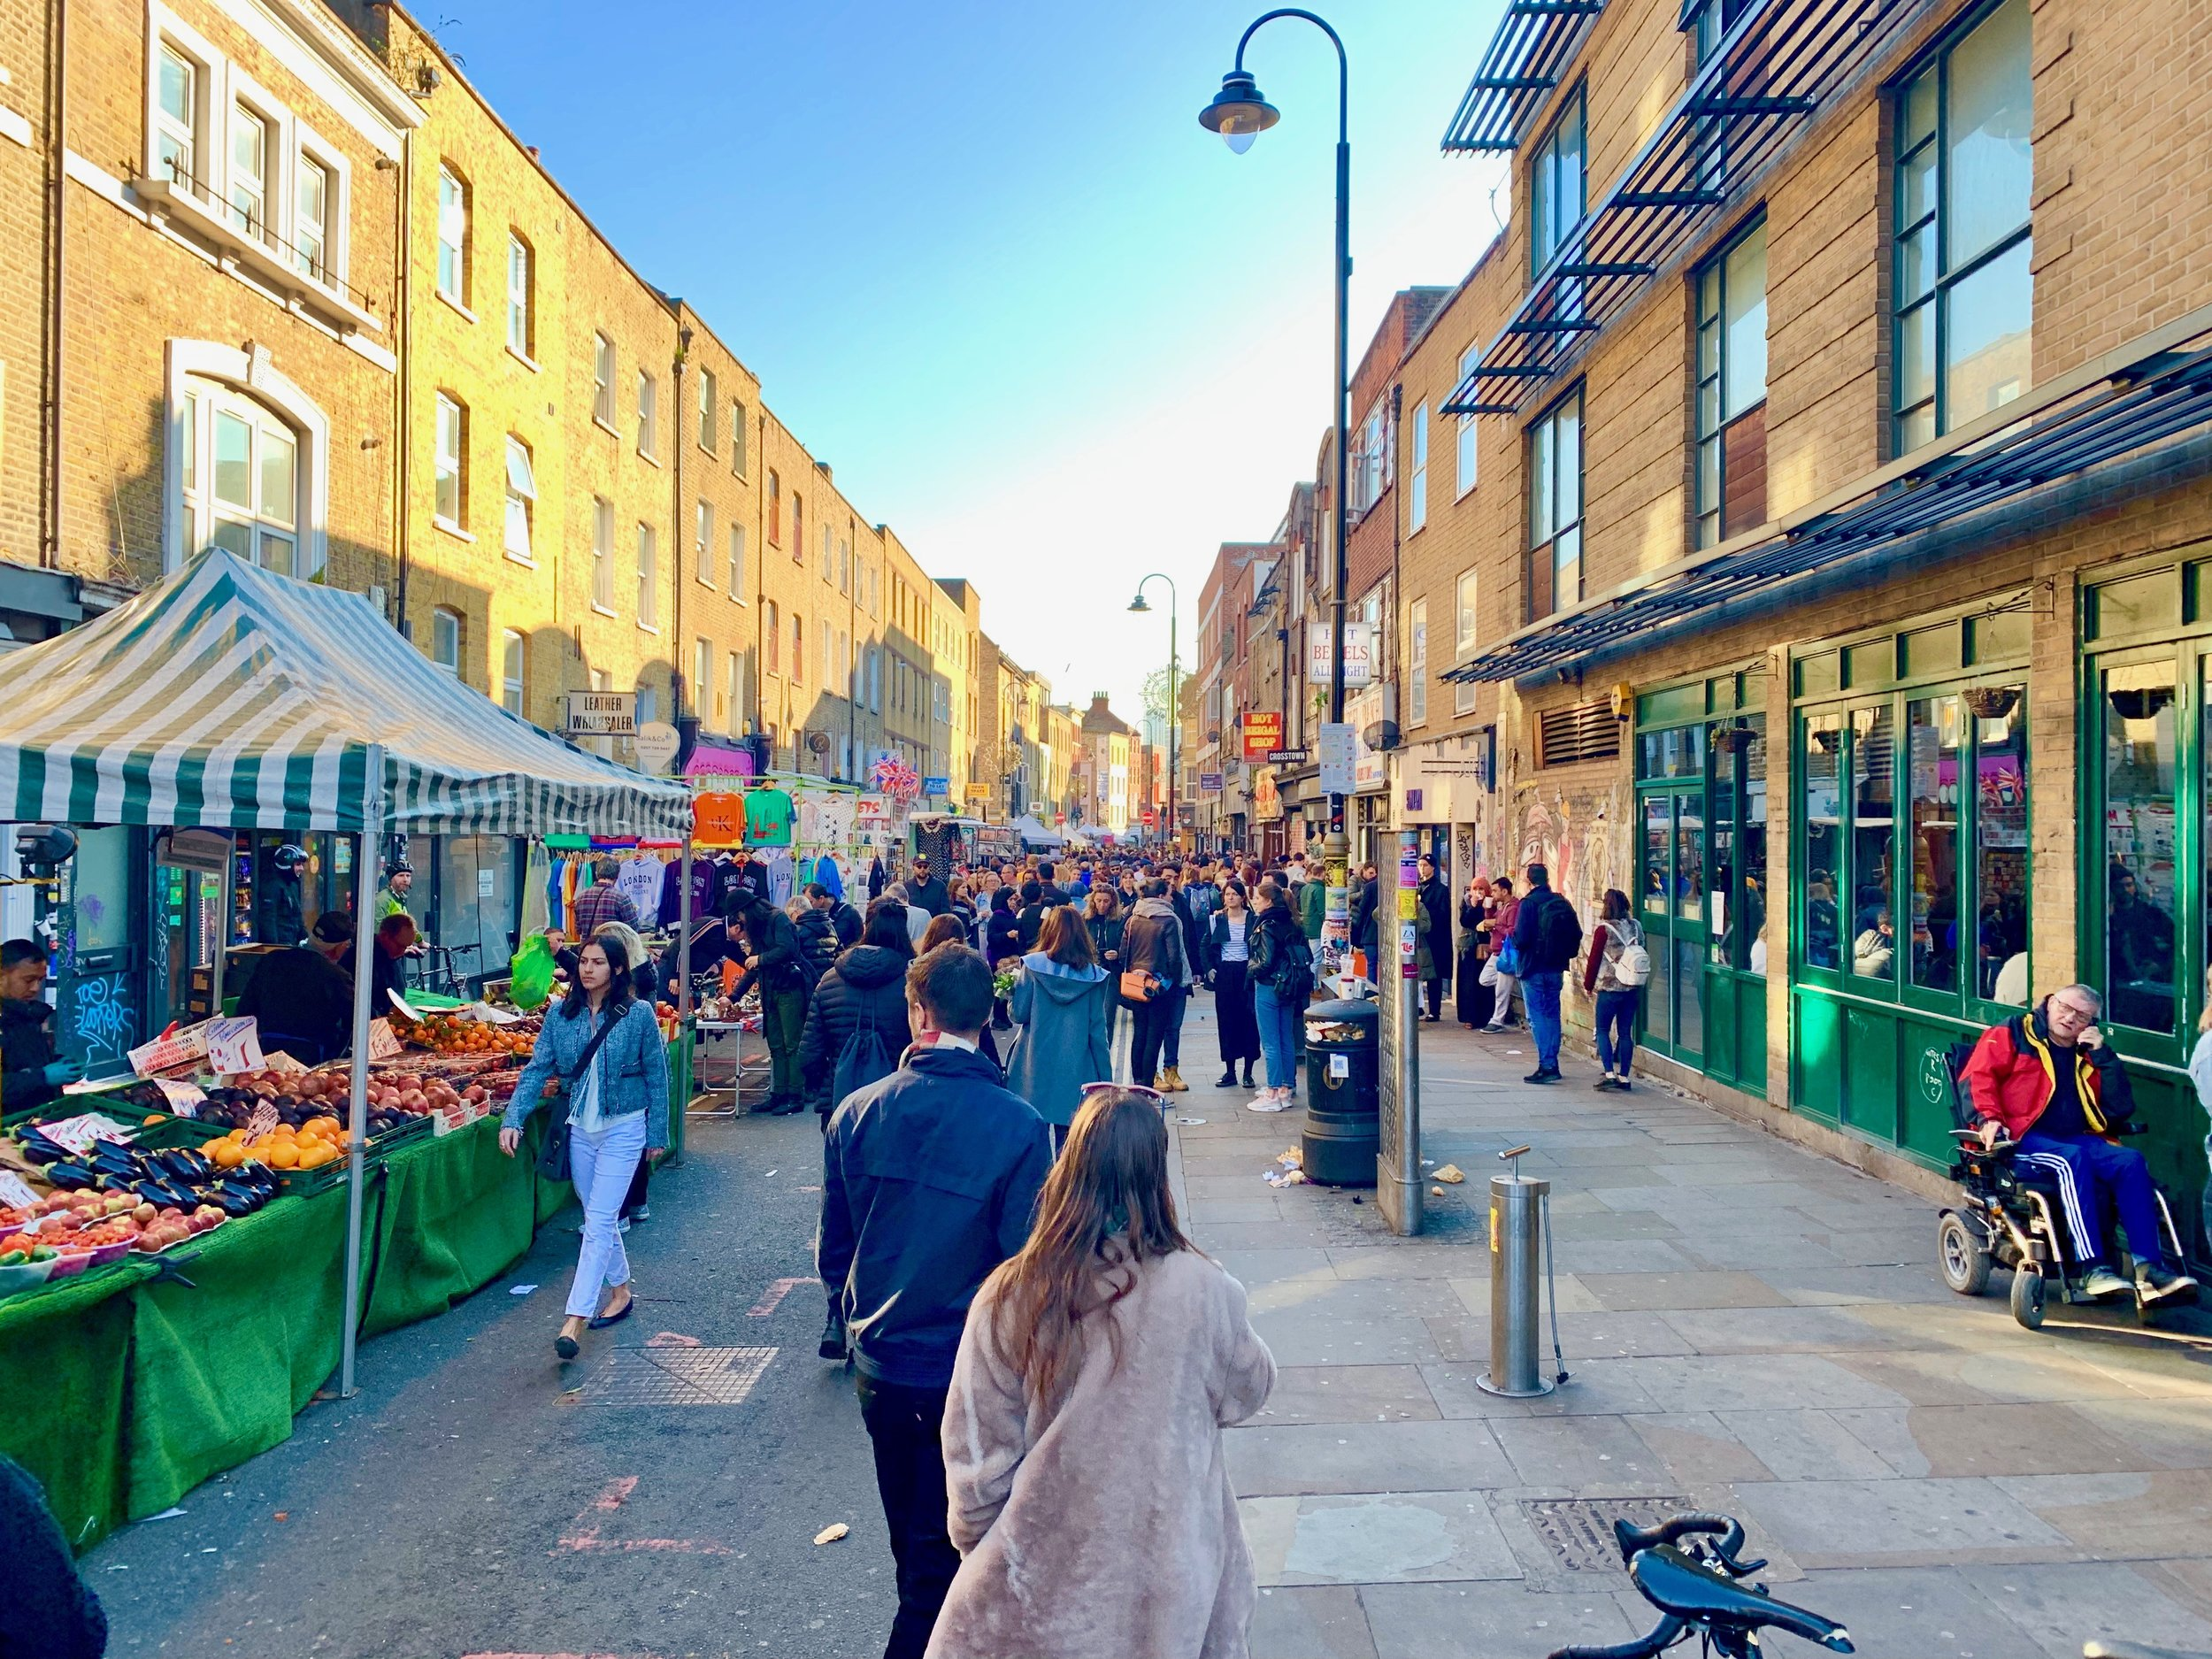 The Brick Lane Market happens every Sunday in East London